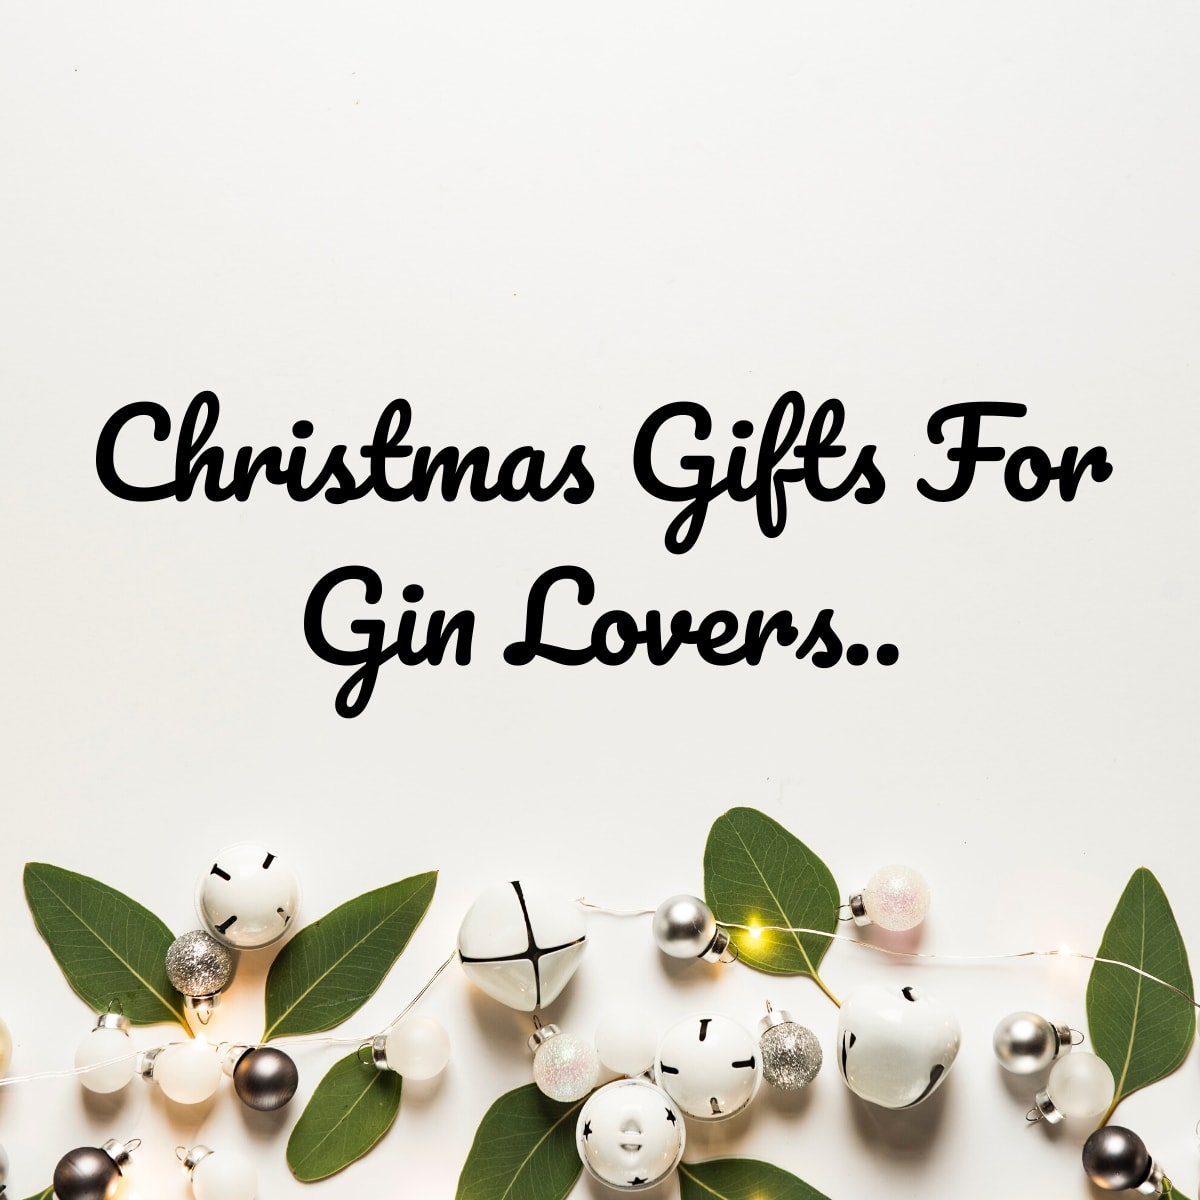 Christmas Gift Ideas For Gin Lovers 2020